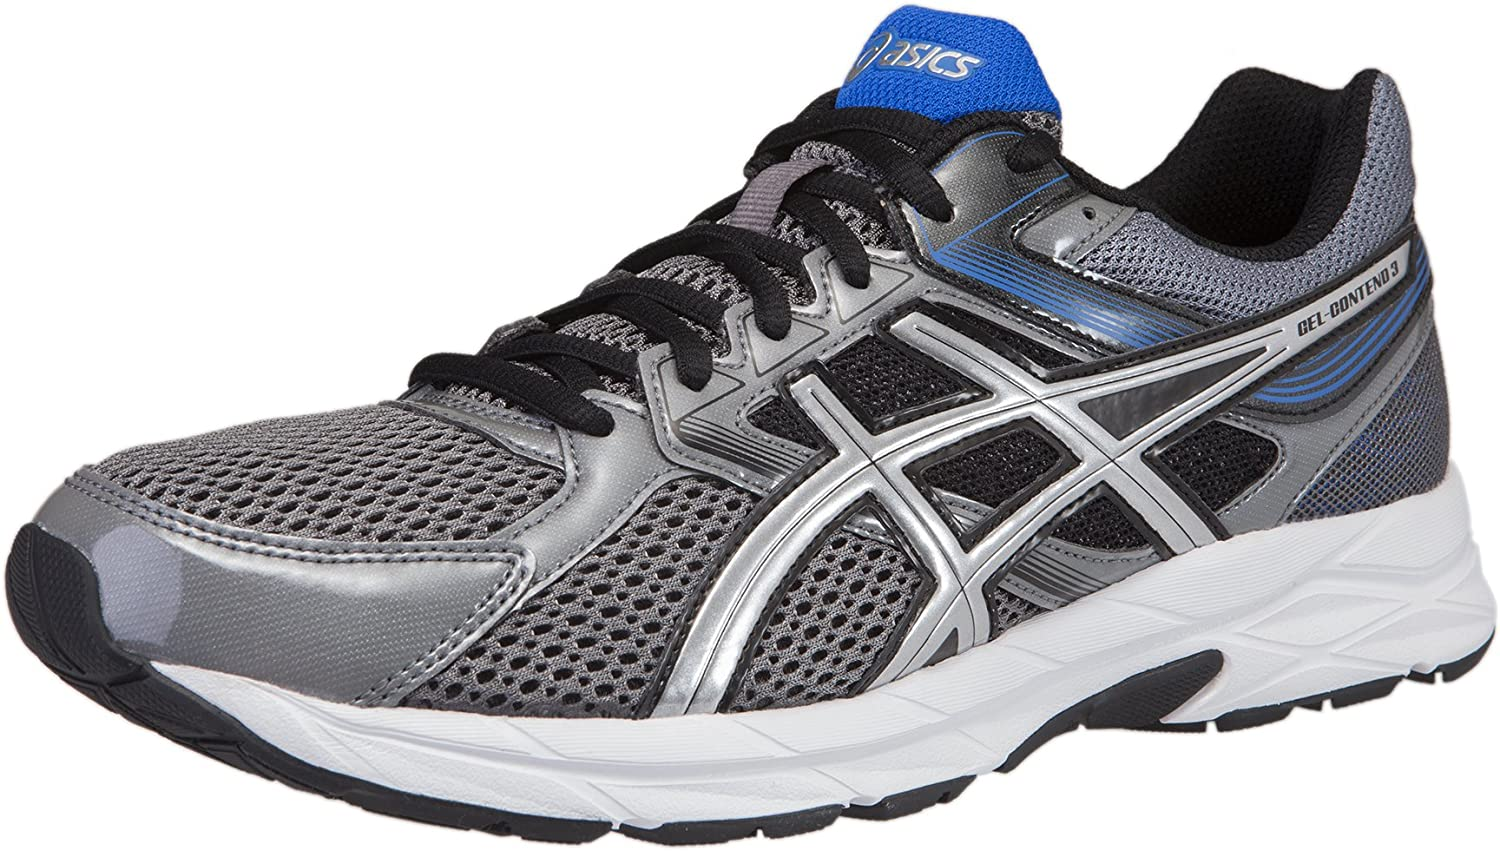 ASICS Men s Gel-Contend 3 Running Shoe 10.5 D M US, Charcoal Silver Turkish Sea